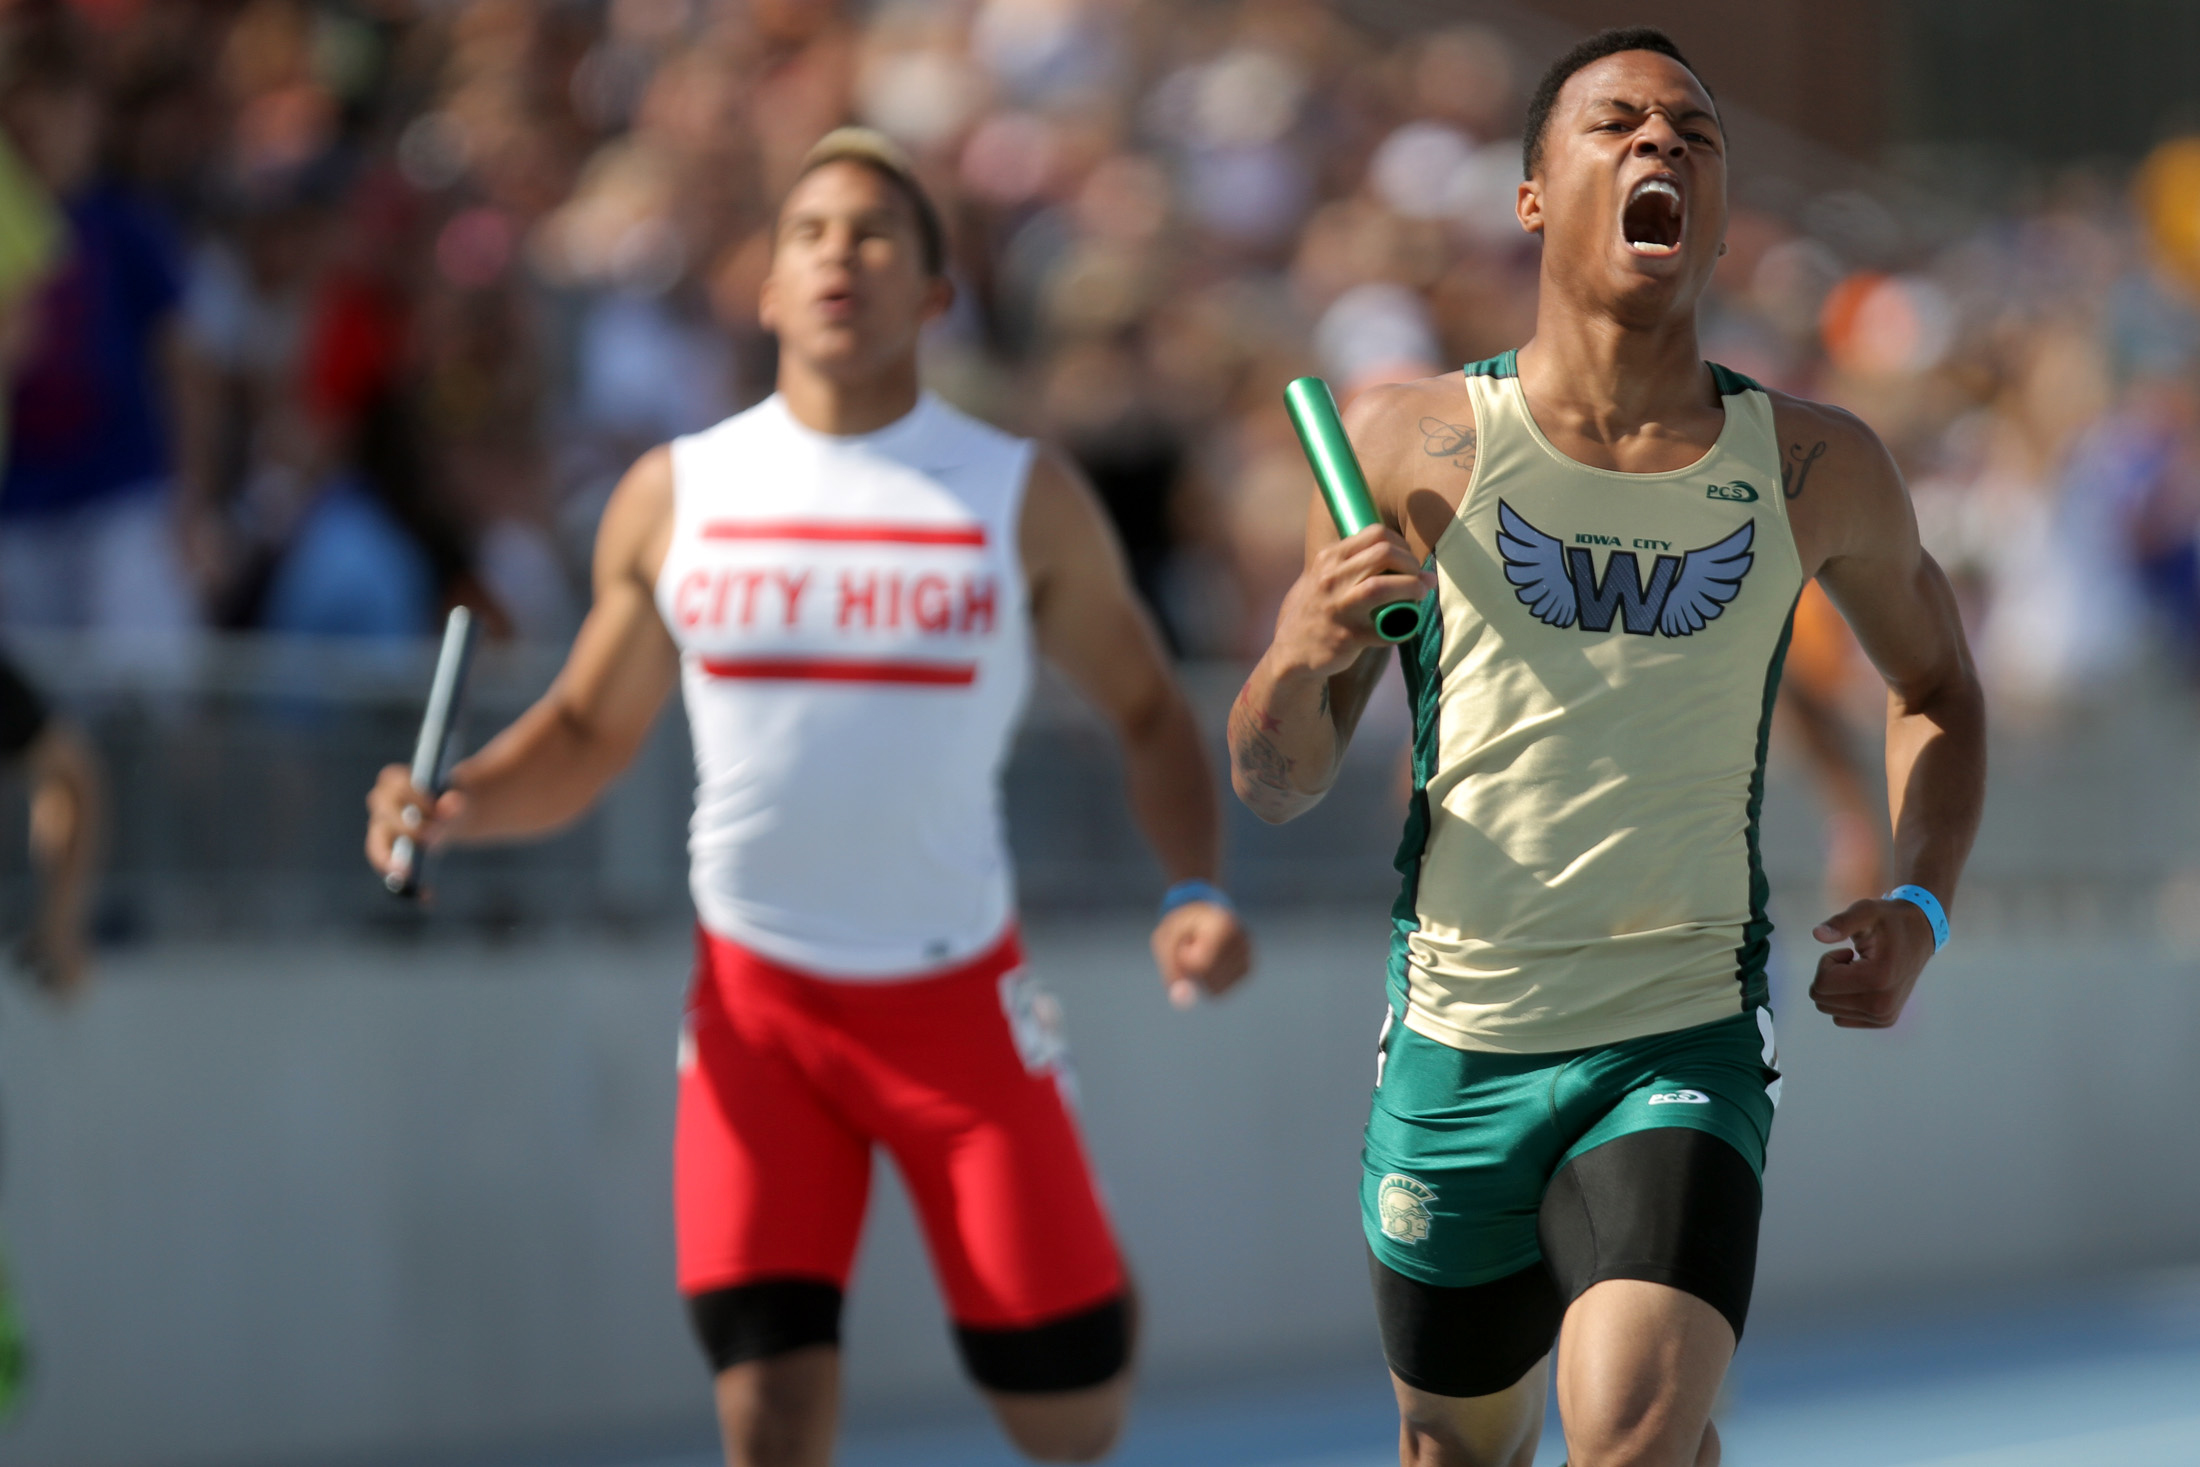 West High's Armando Williams celebrates his team's victory in the 4x200-meter relay race at the Iowa State Track Meet at Drake Stadium.